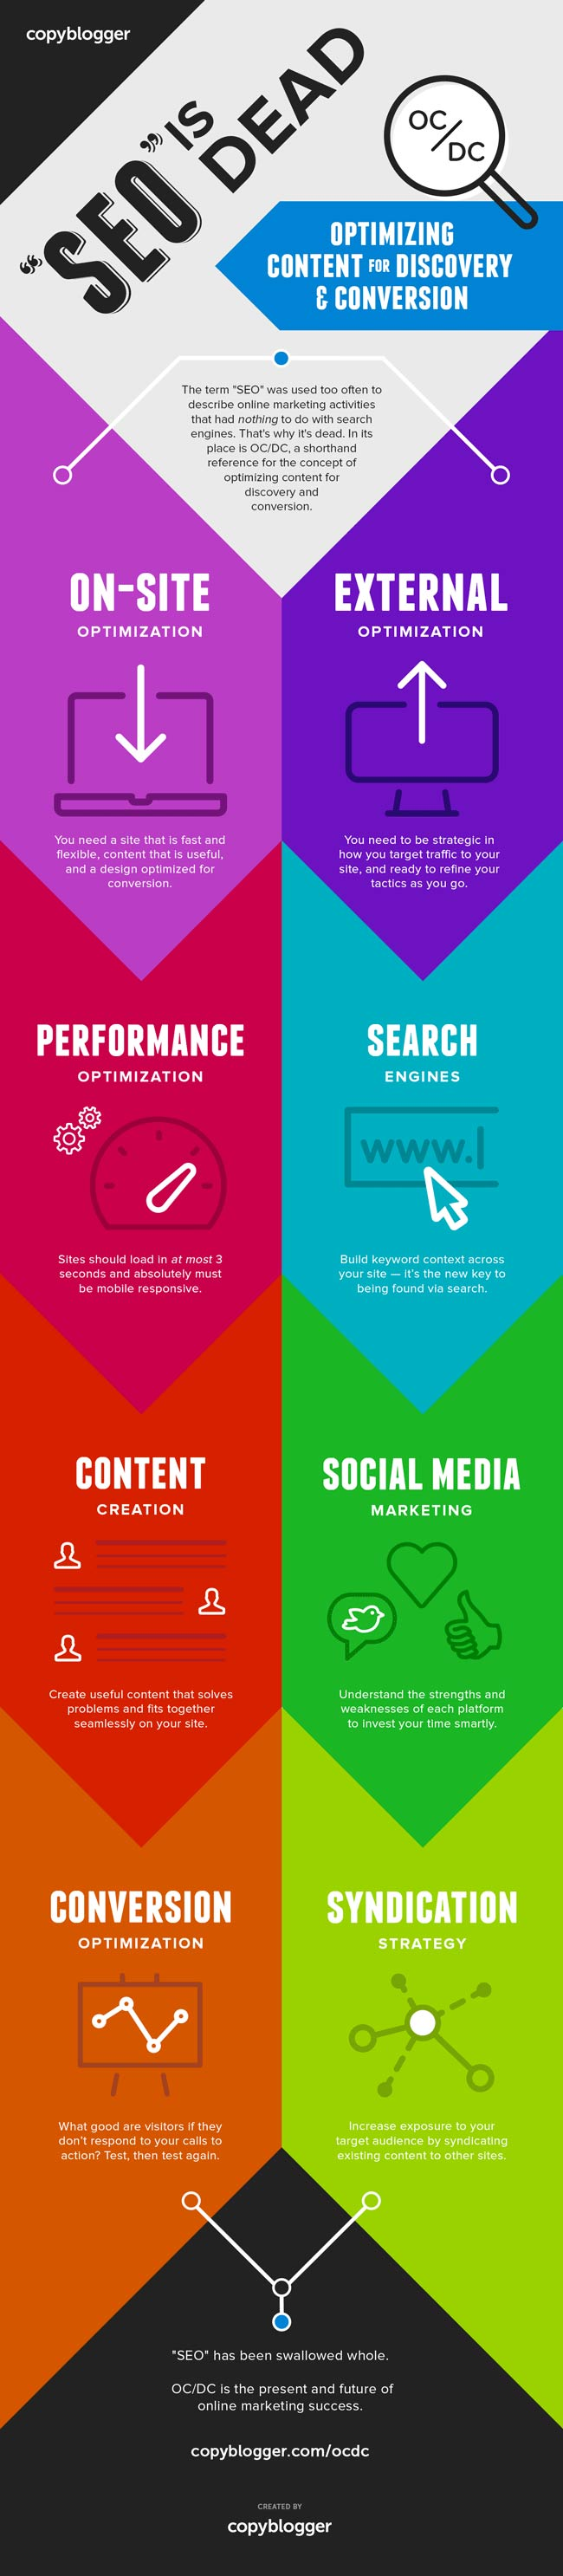 SEO is Dead - Infographic